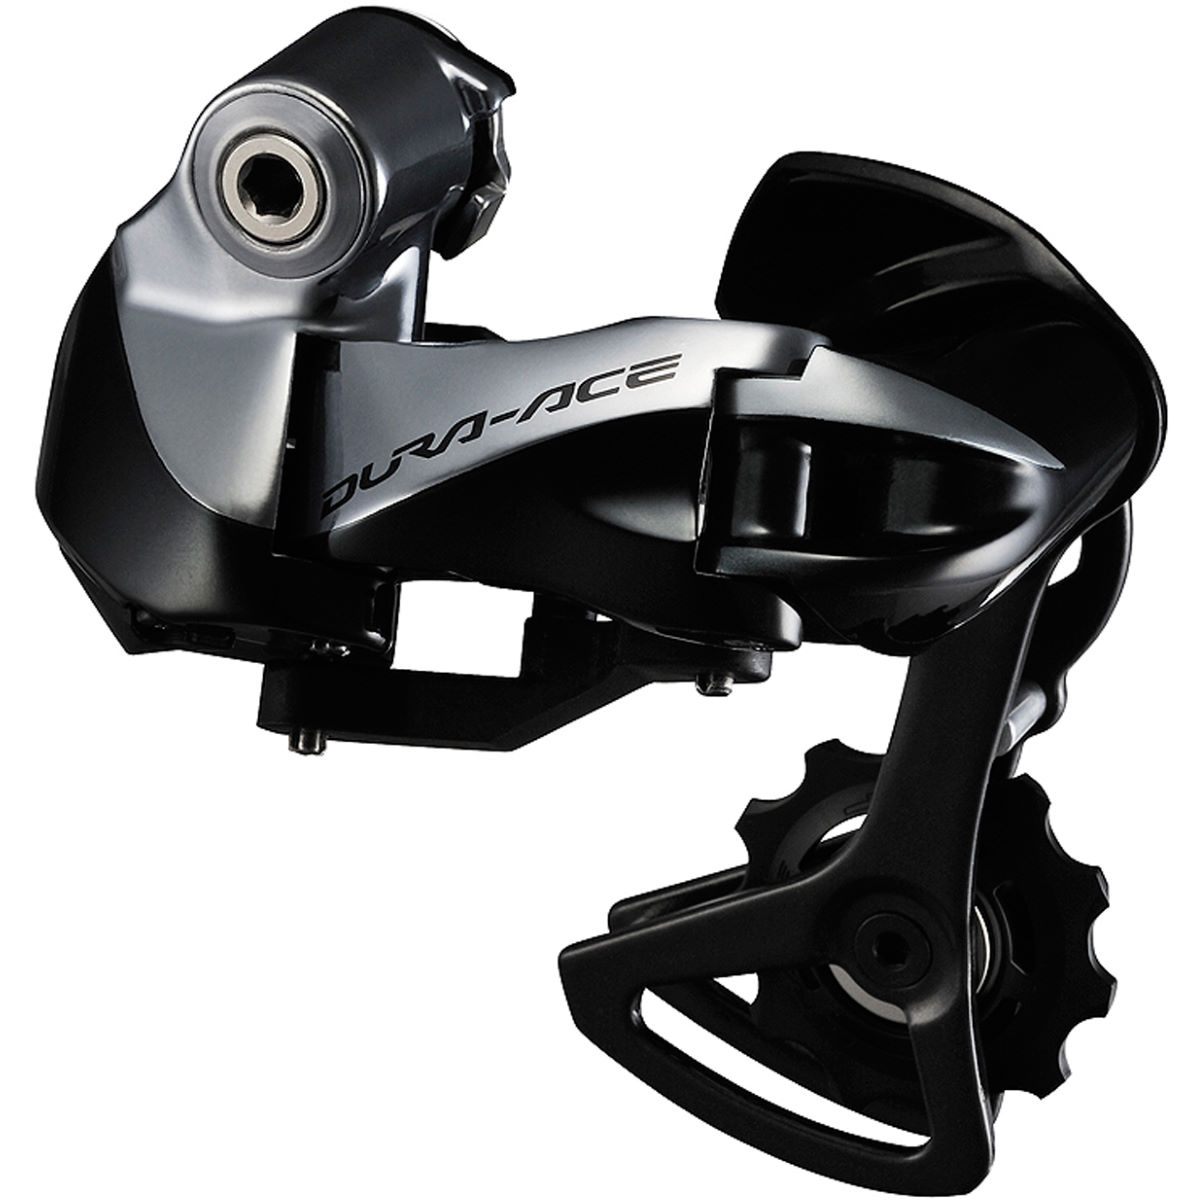 how to change rear derailleur cable shimano ultegra